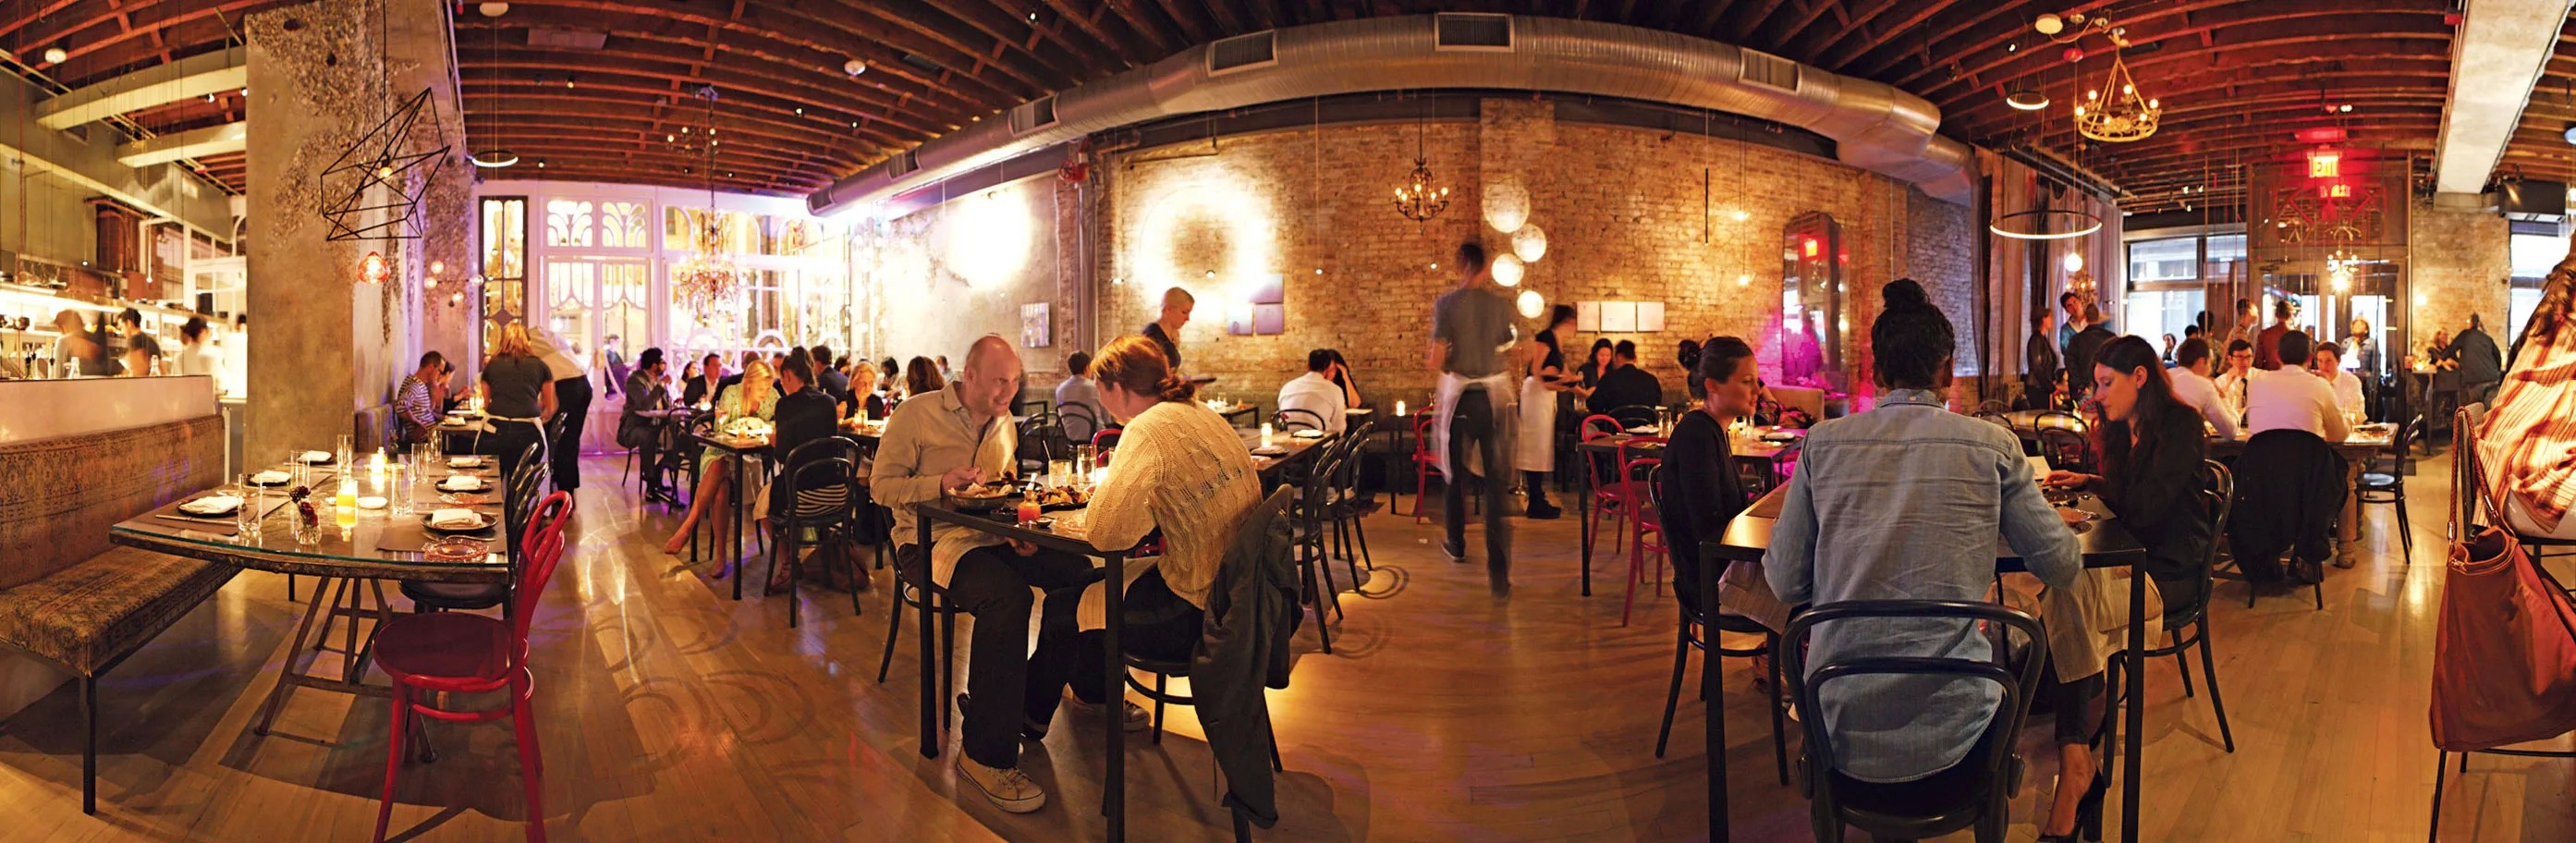 Abc Cocina Yelp Abc Cocina New York Magazine The Thousand Best